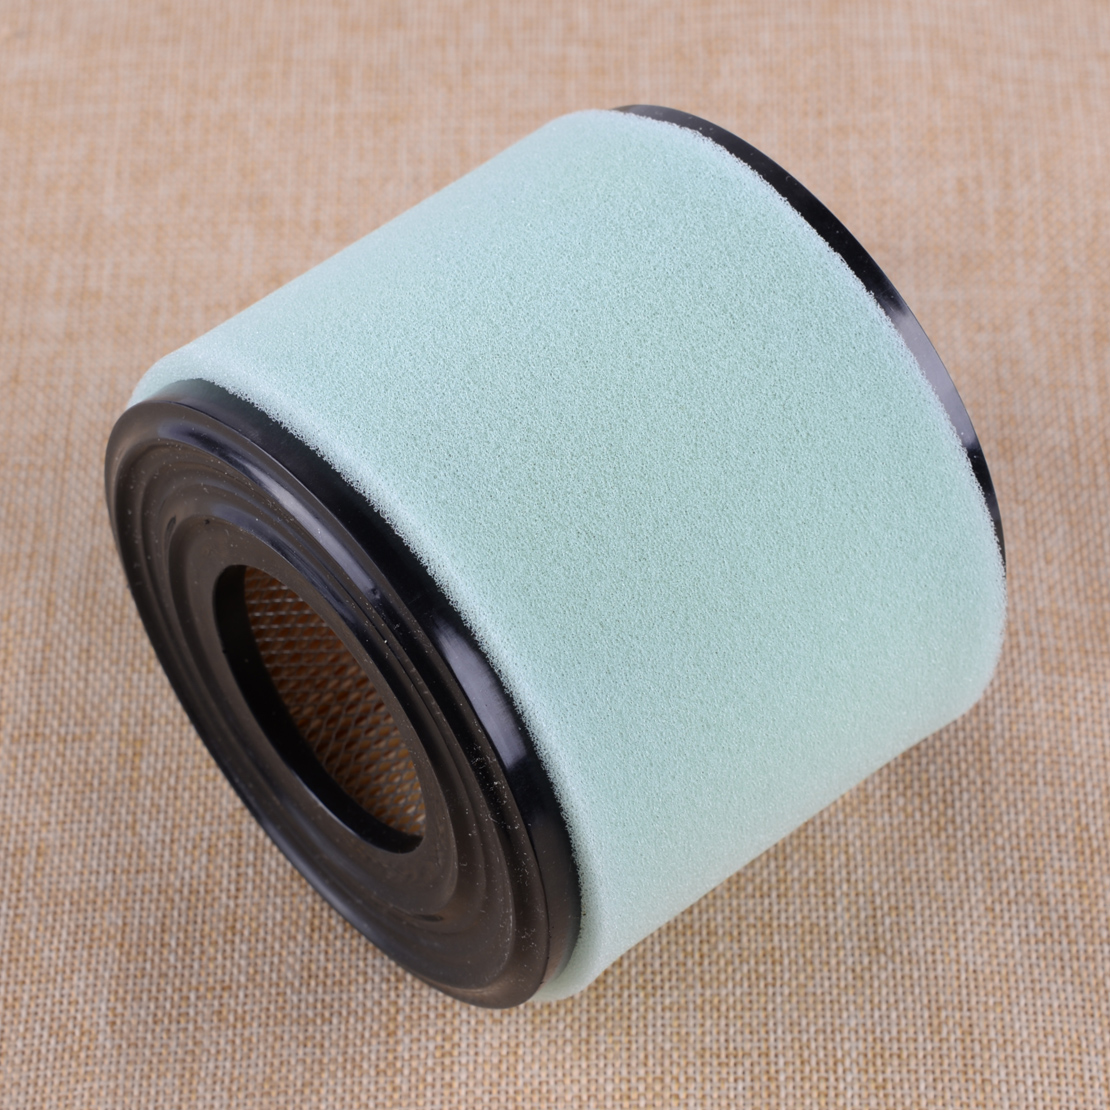 LEATOSK Air Filter 390930 393957 393957S Fit For Briggs & Stratton 170400/ 171400/ 190400 222400 Engine